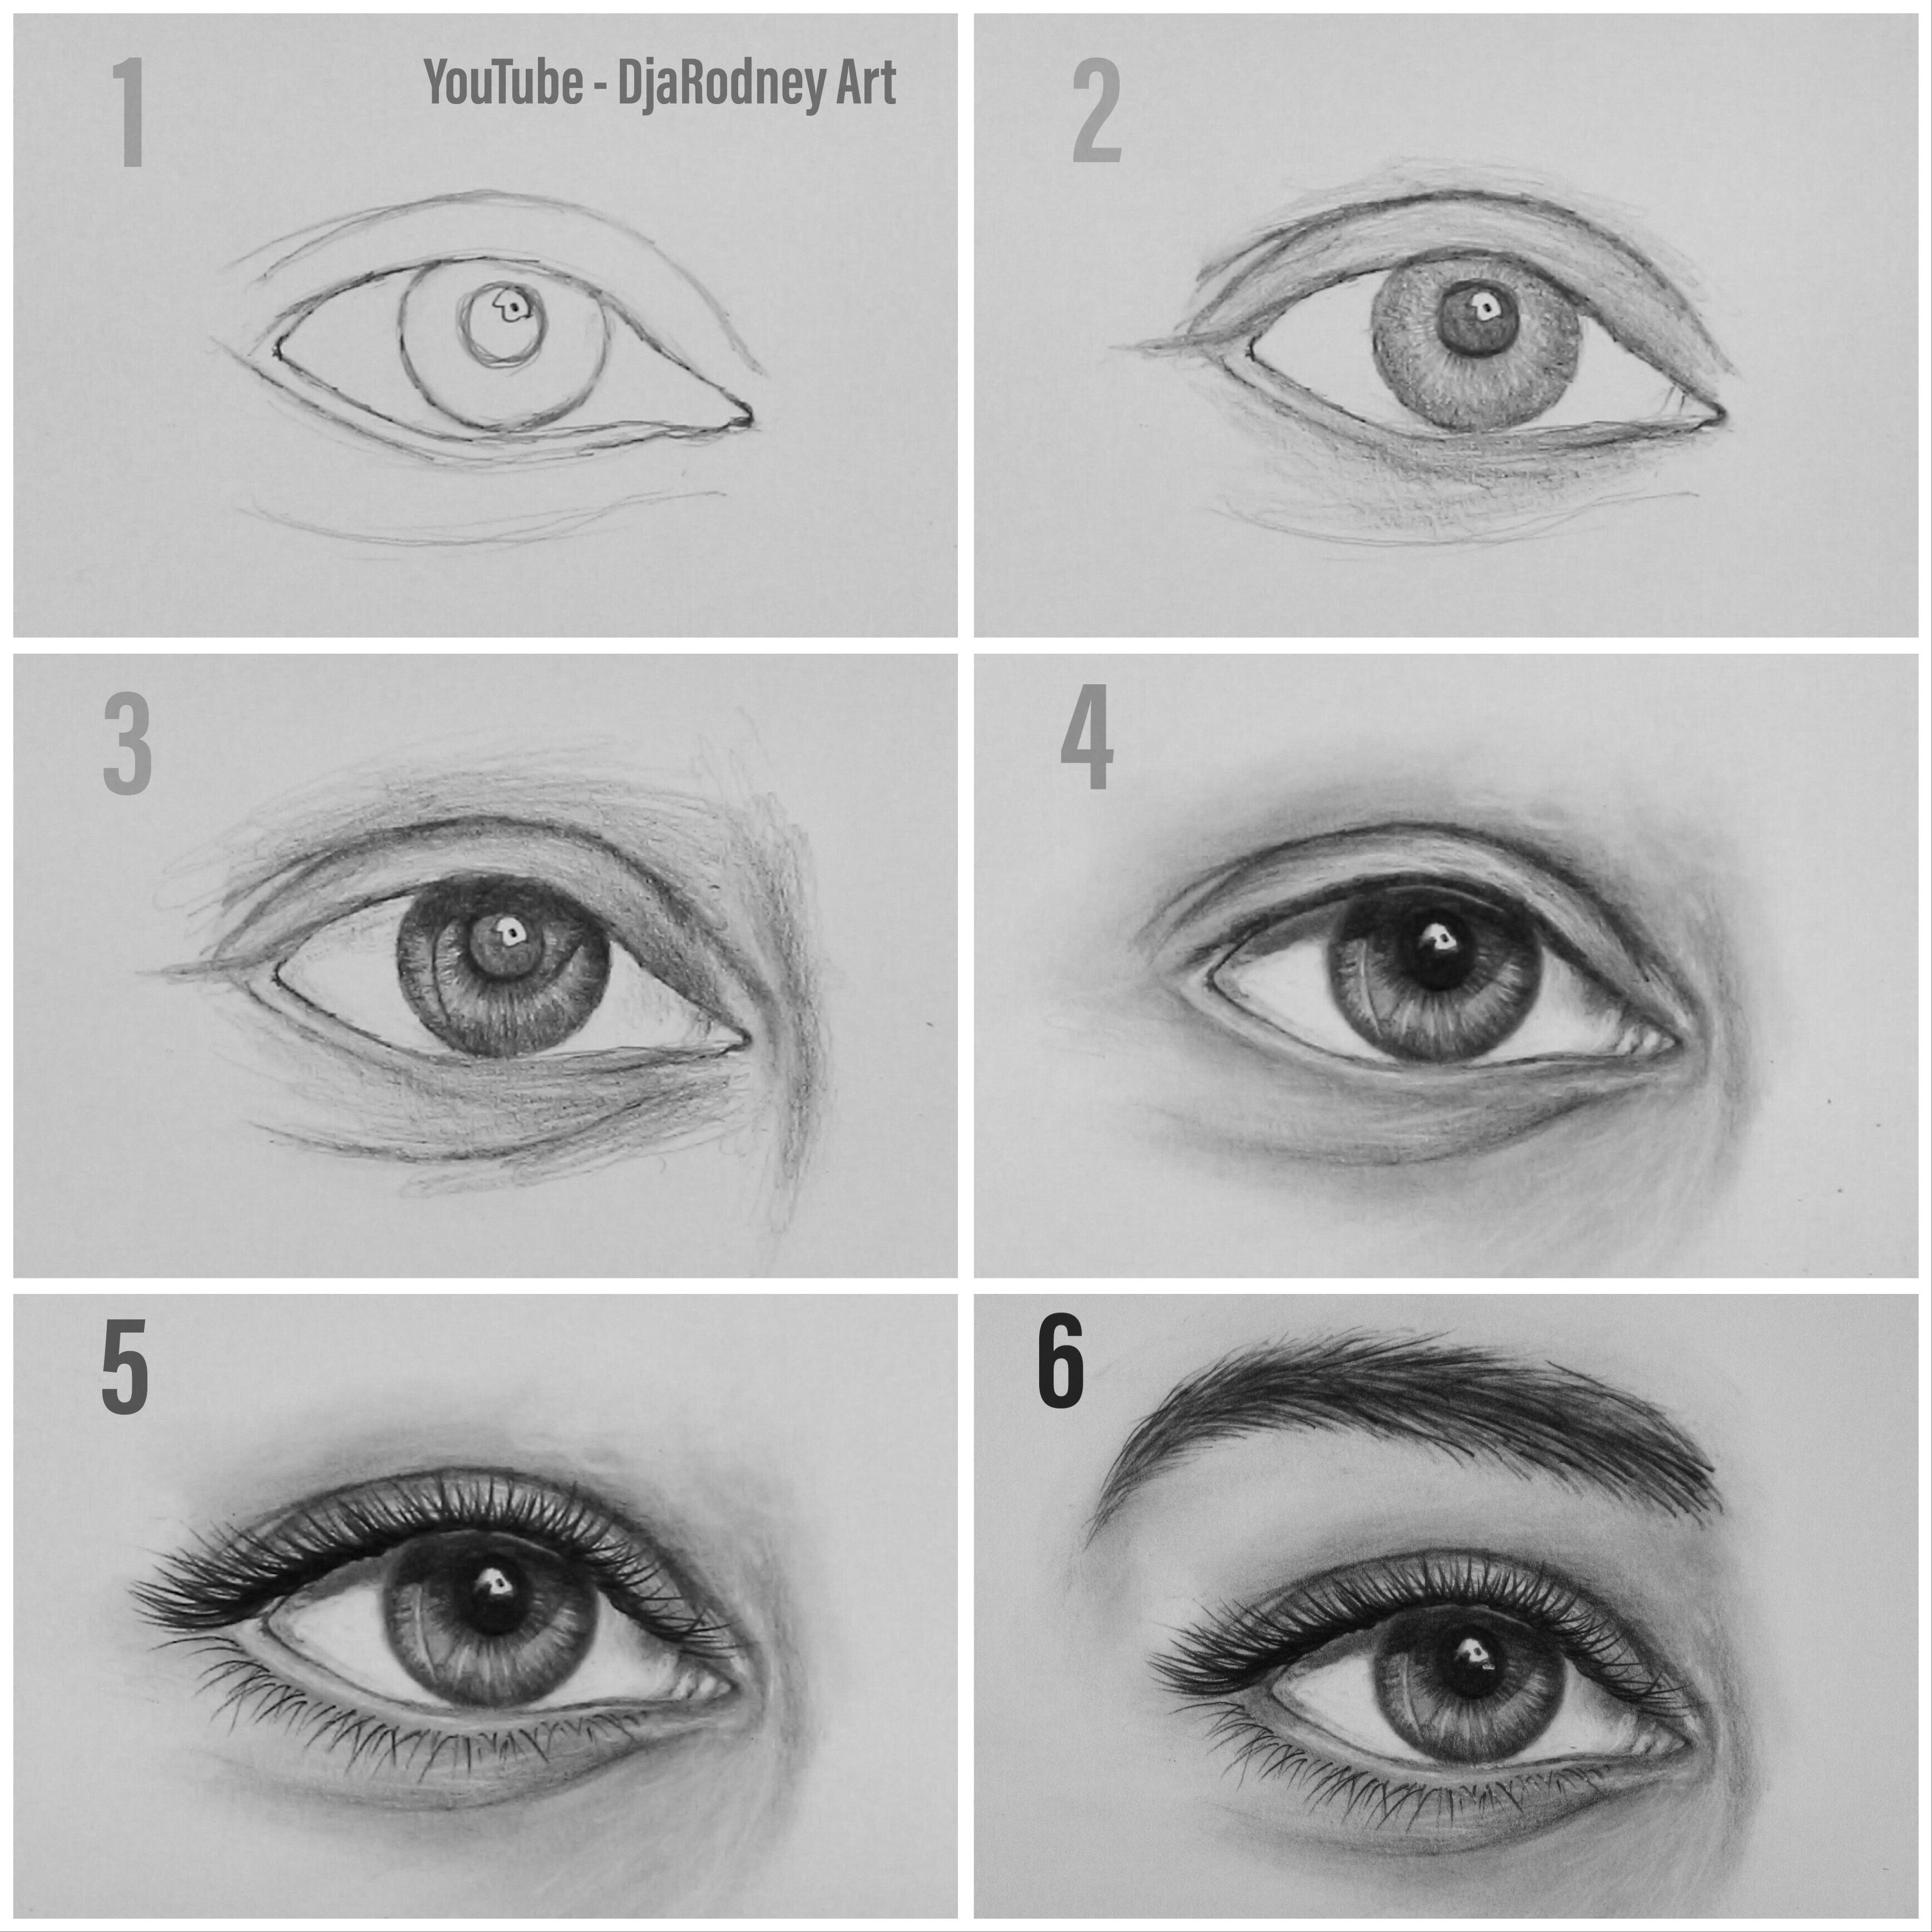 Easy Way To Draw Realistic Eyes Step By Step For Beginners Hello Guy In This Tut Easy Drawings Sketches Pencil Drawings For Beginners Eye Drawing Tutorials